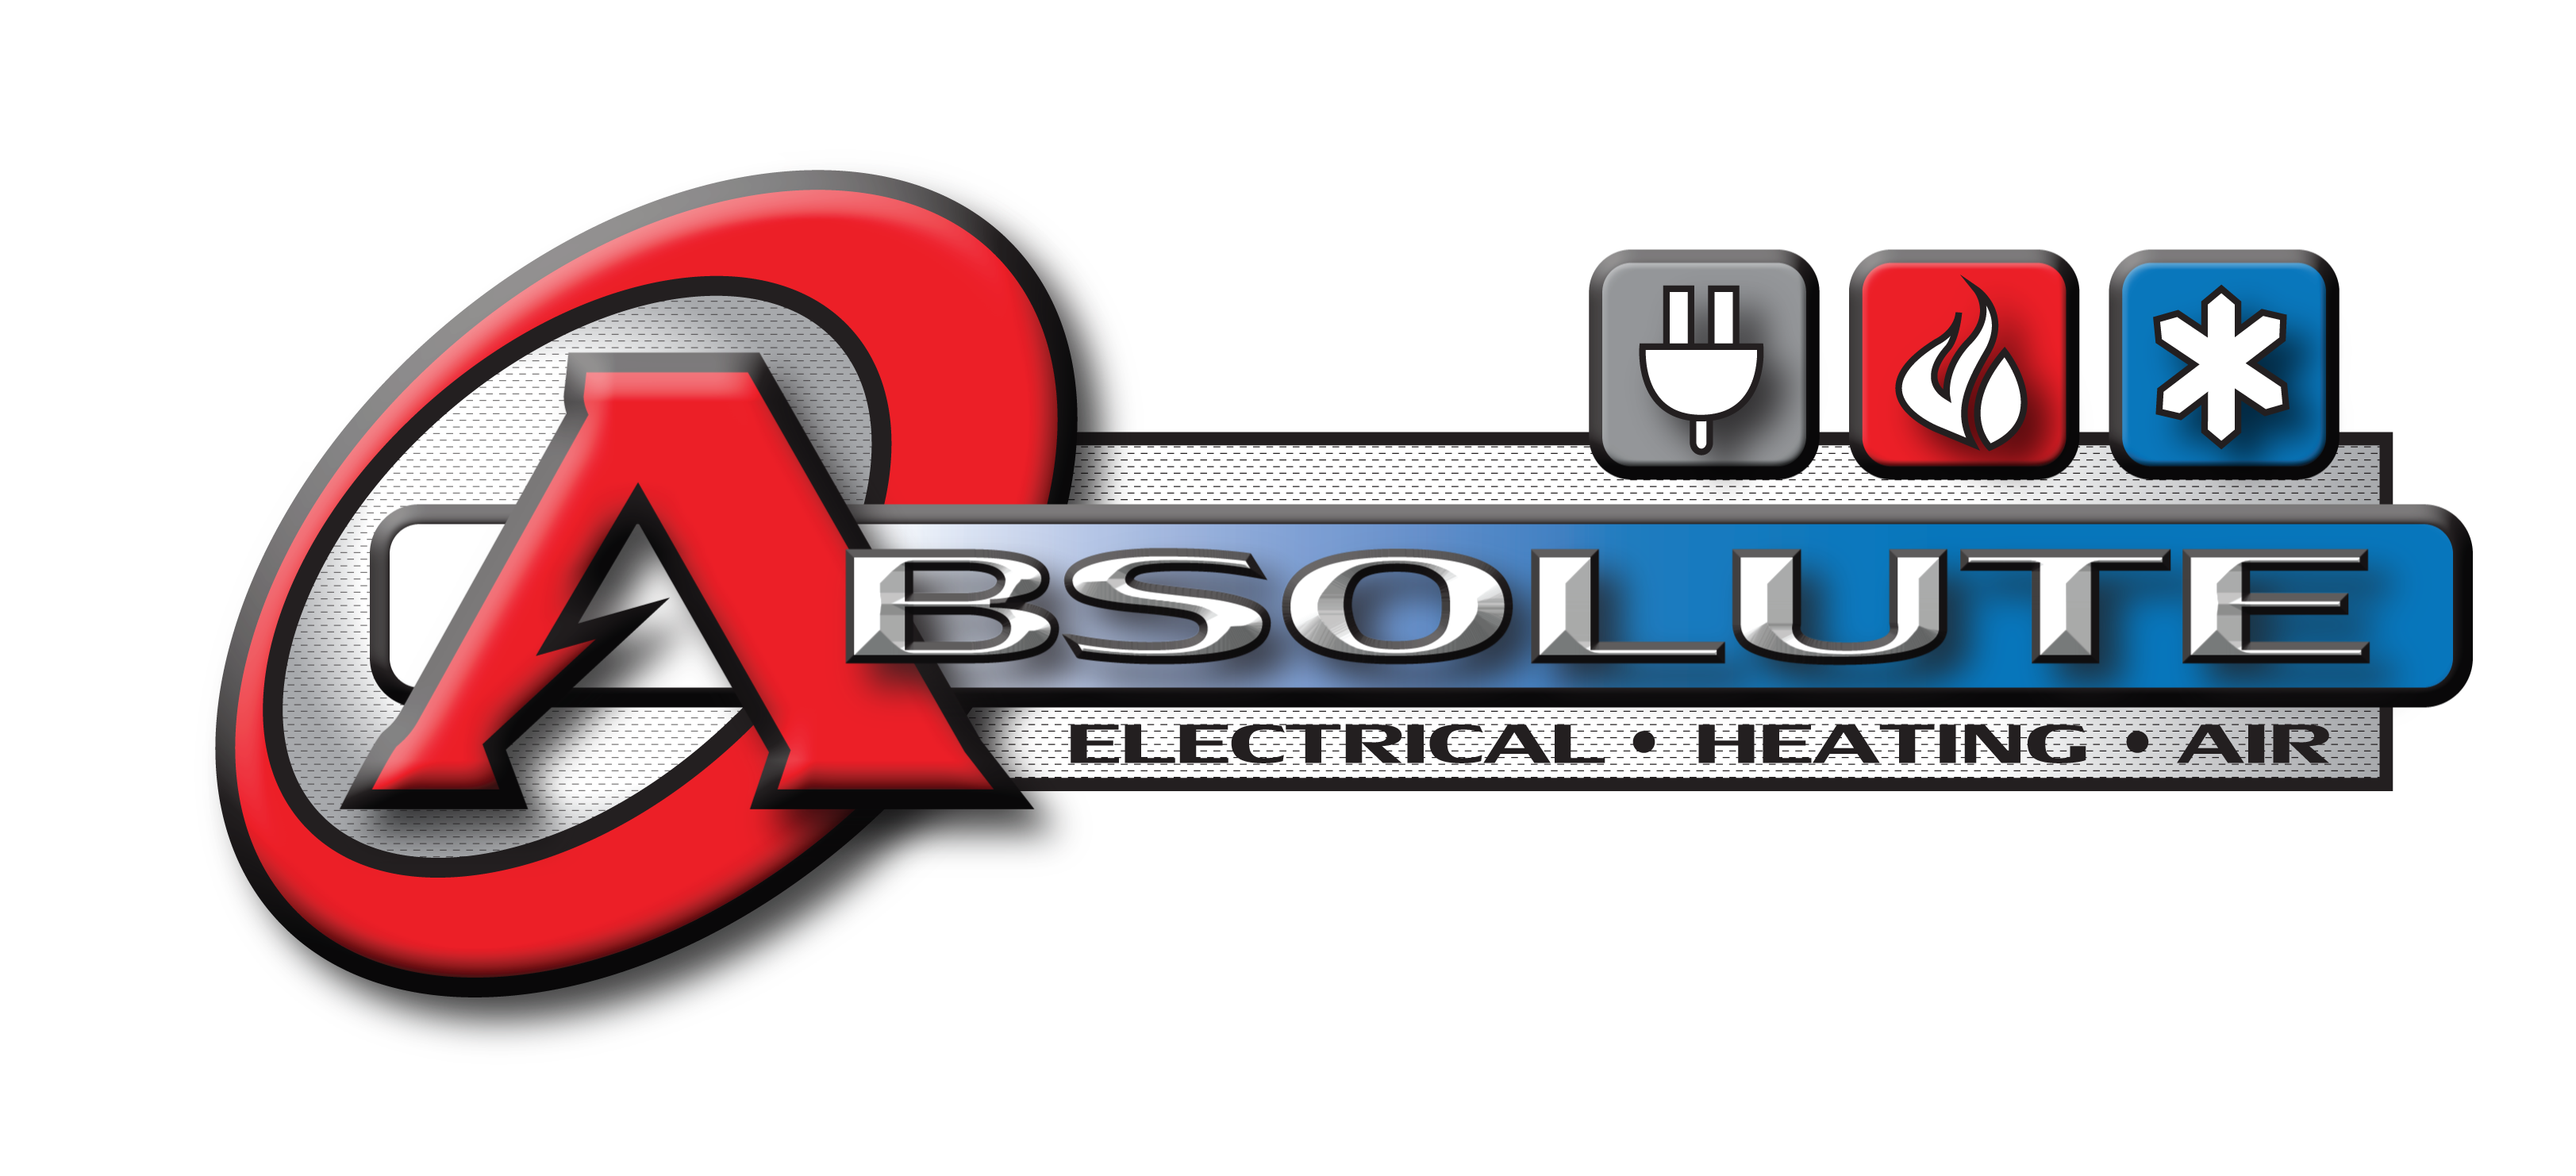 Absolute Electrical Heating and Air logo